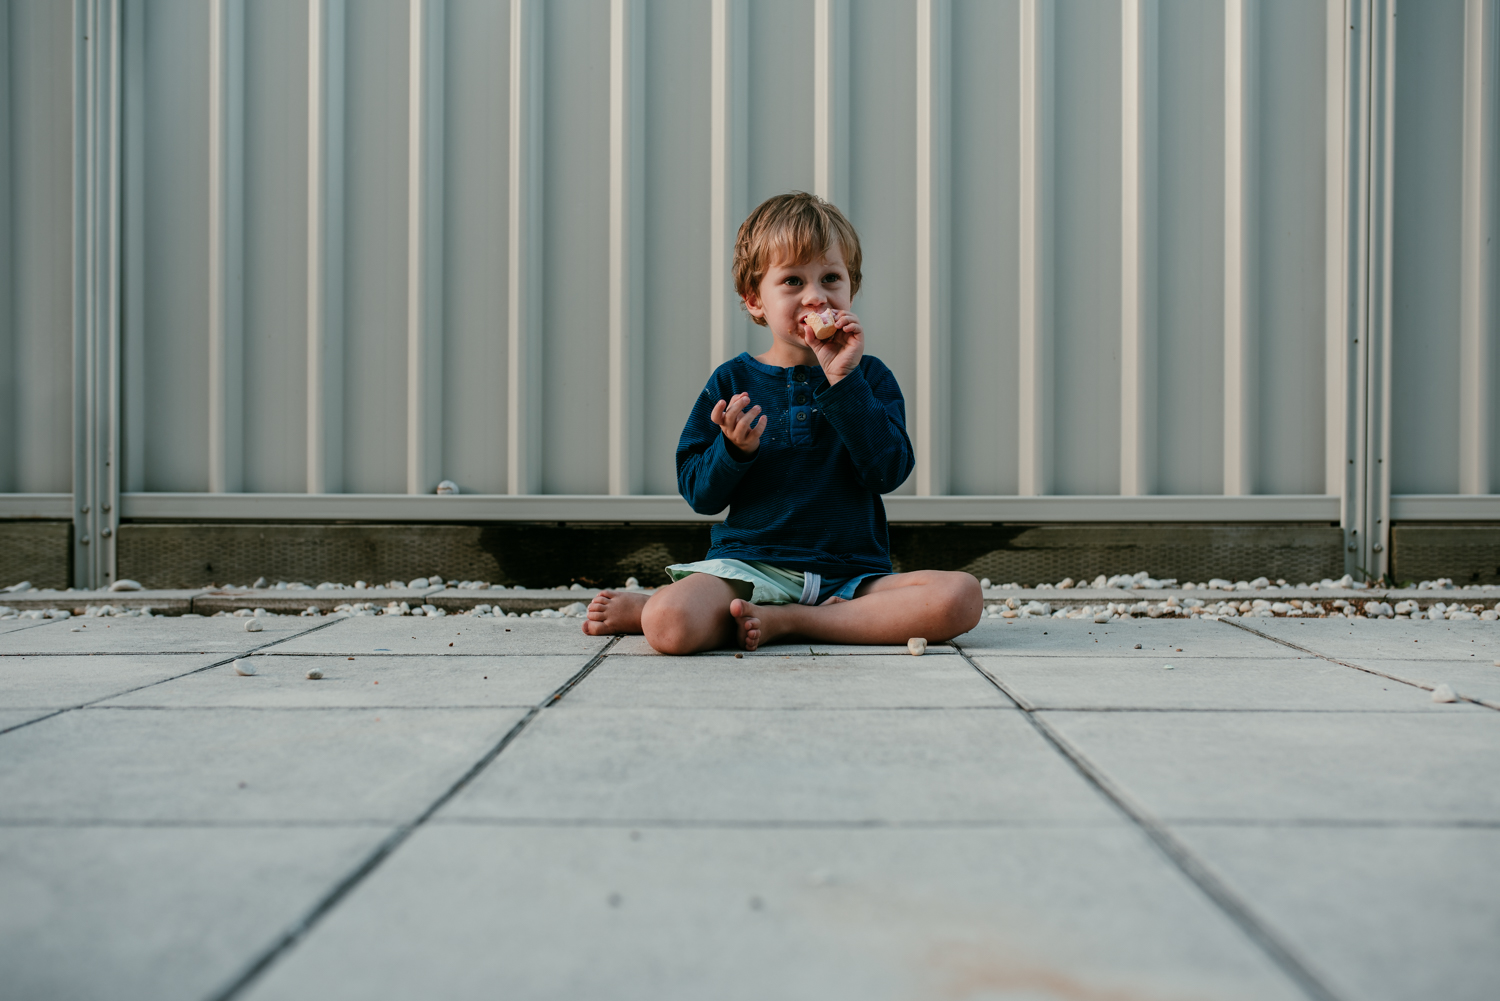 How to get your kid to sit still for a photo 101: give him ALL the ice cream. In this image, I used leading lines to draw the eye in toward my cute little subject, and add some visual interest.